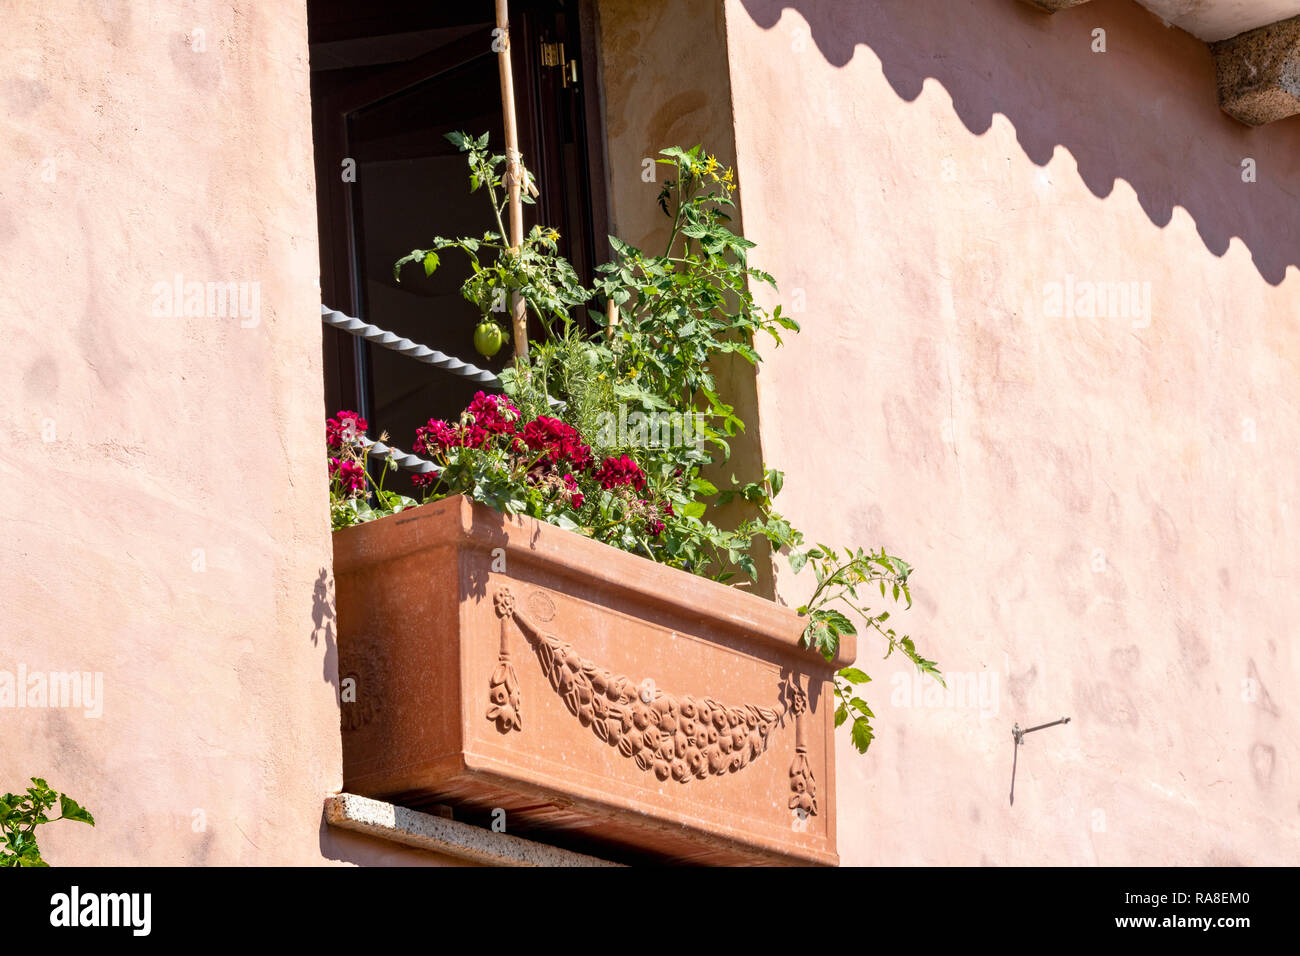 Window Box Surprise. Window Box with Contents and an Open Window with Pink Washed Wall and Roof Tile Shadows. San Pantaleo, Gallura, Sardinia, Italy. - Stock Image